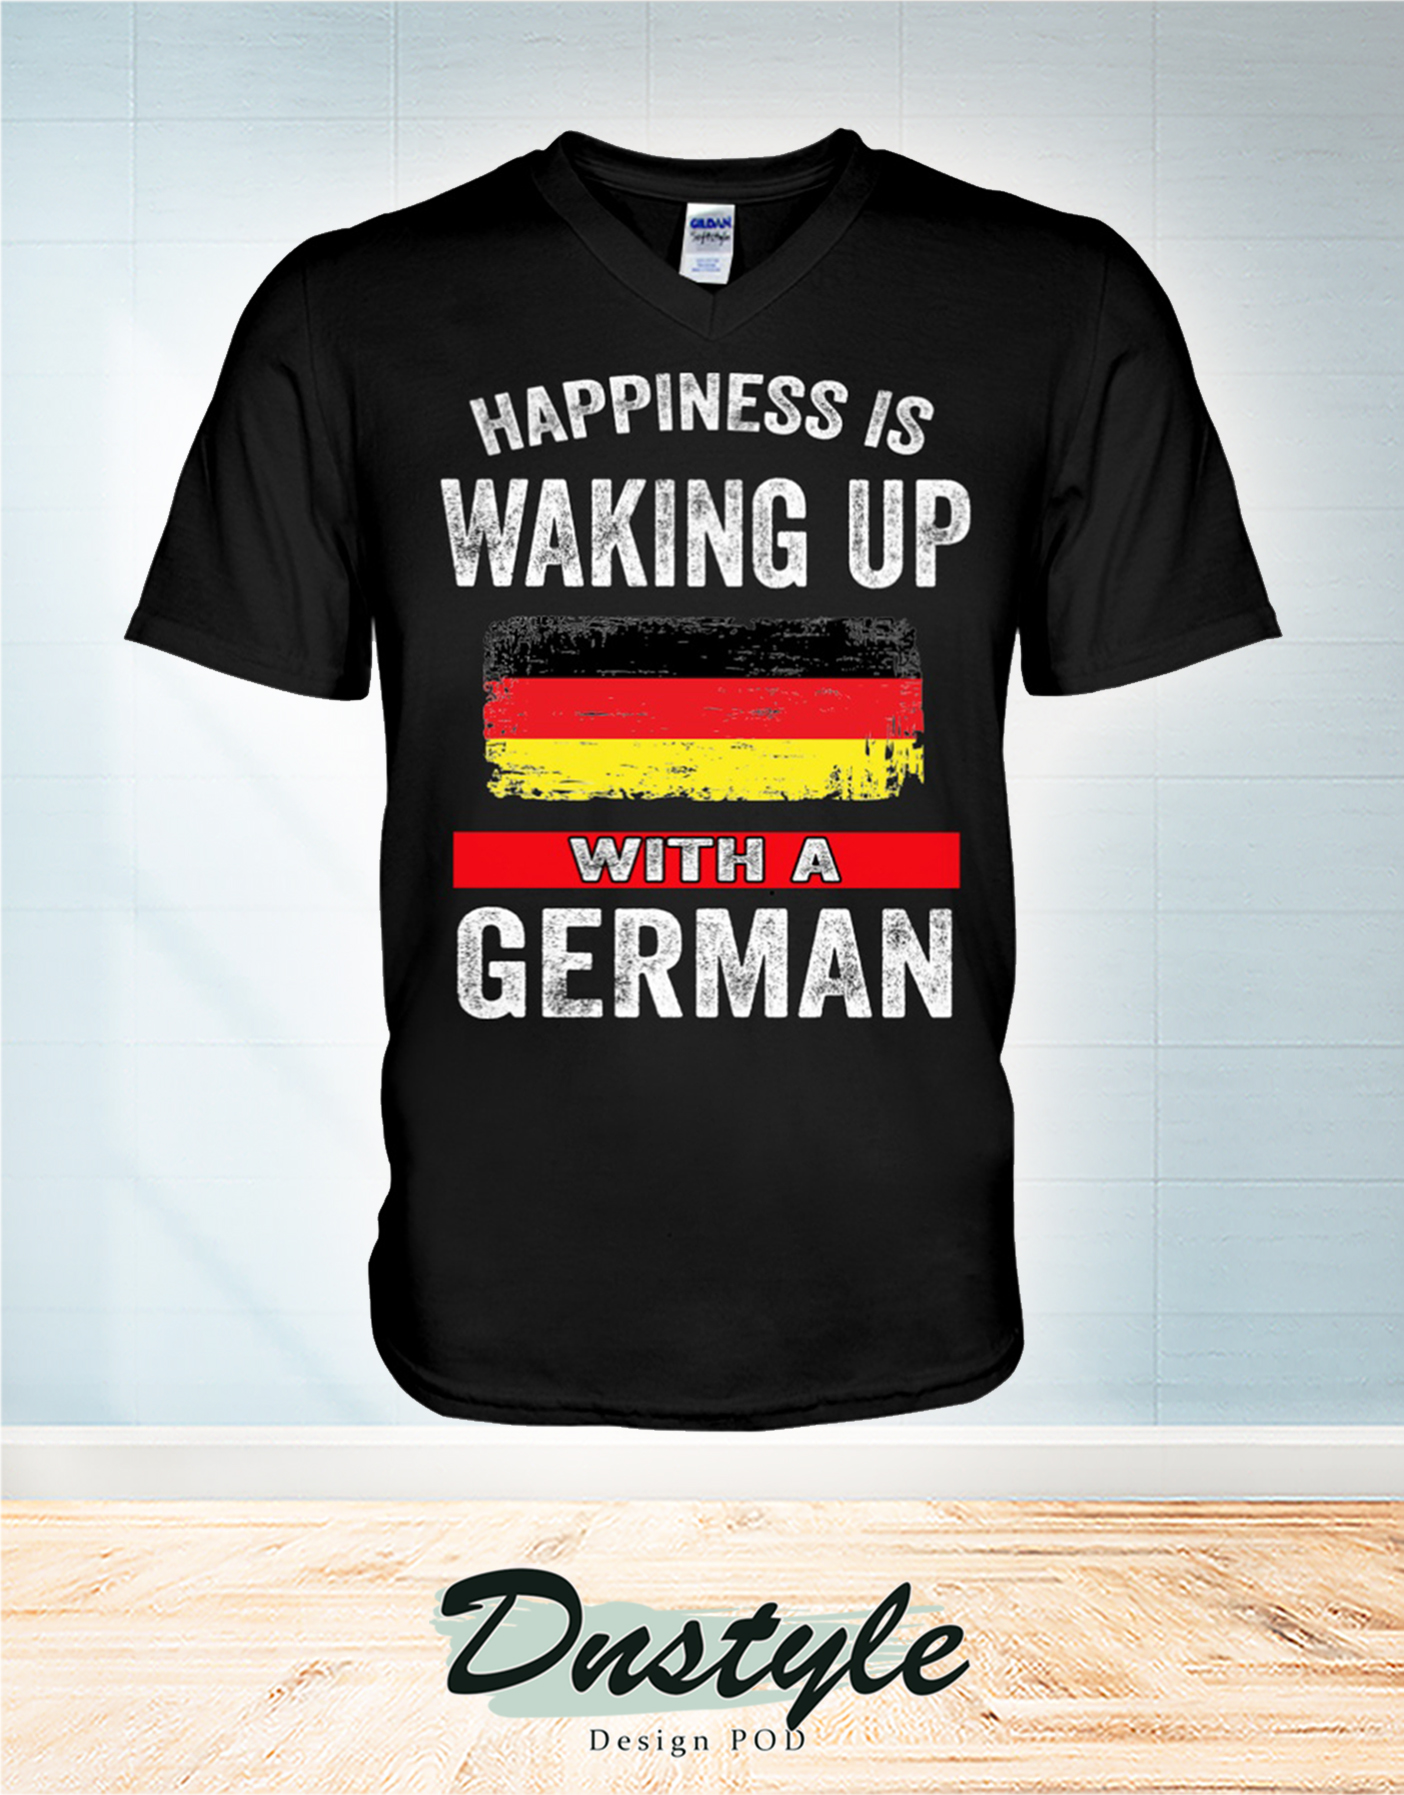 Happiness is waking up with a German v-neck